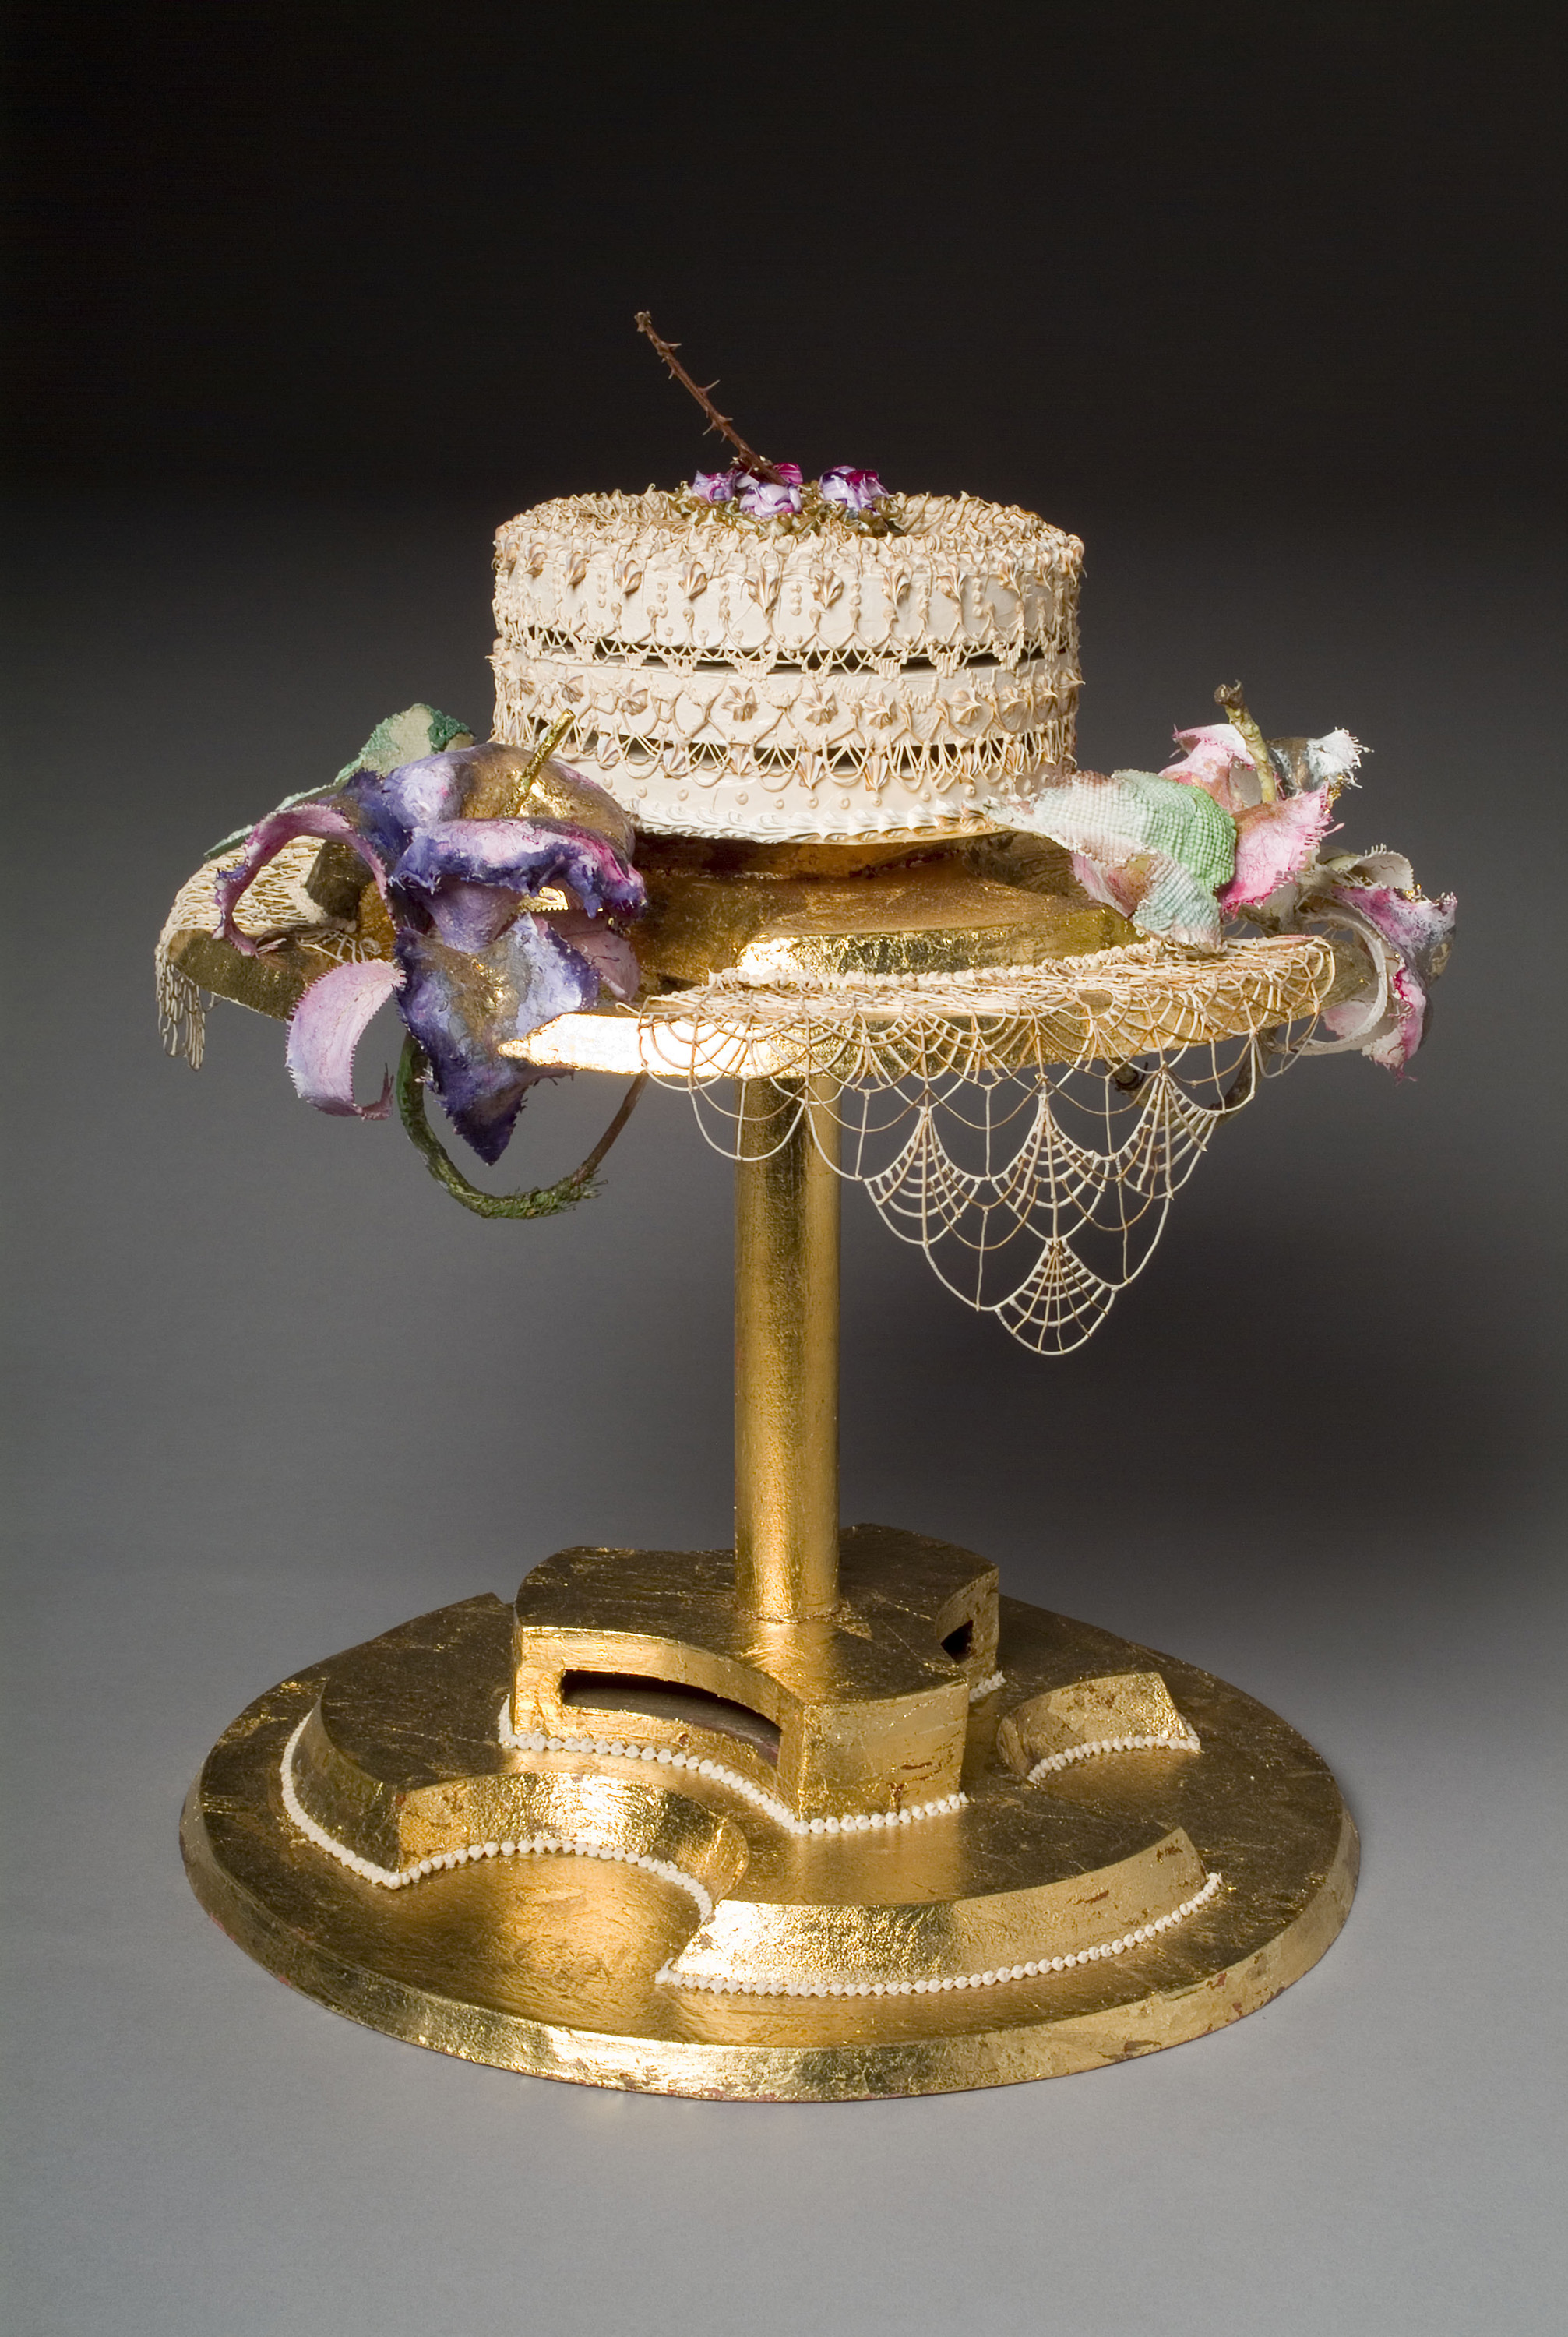 Pat Lasch, Anniversary Cake, 1986. Eli and Edythe Broad Art Museum, Michigan State University, MSU purchase.